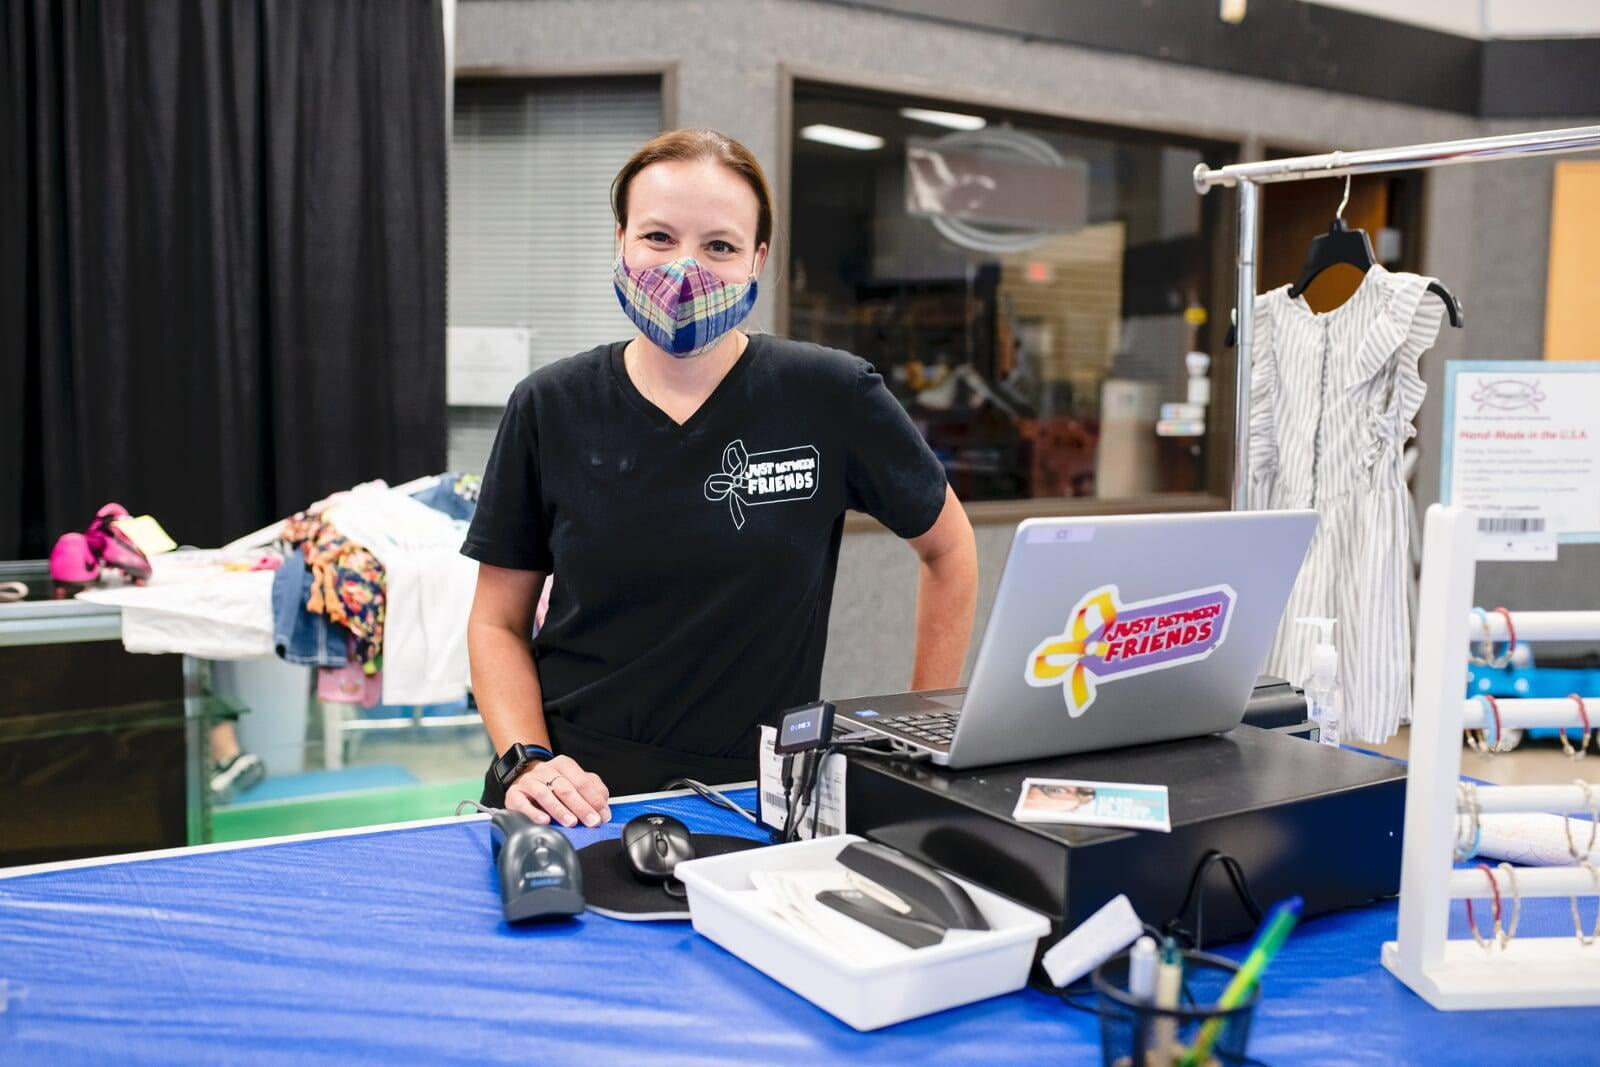 A cashier smiles behind her mask as she gets ready to check out the next happy JBF customer.